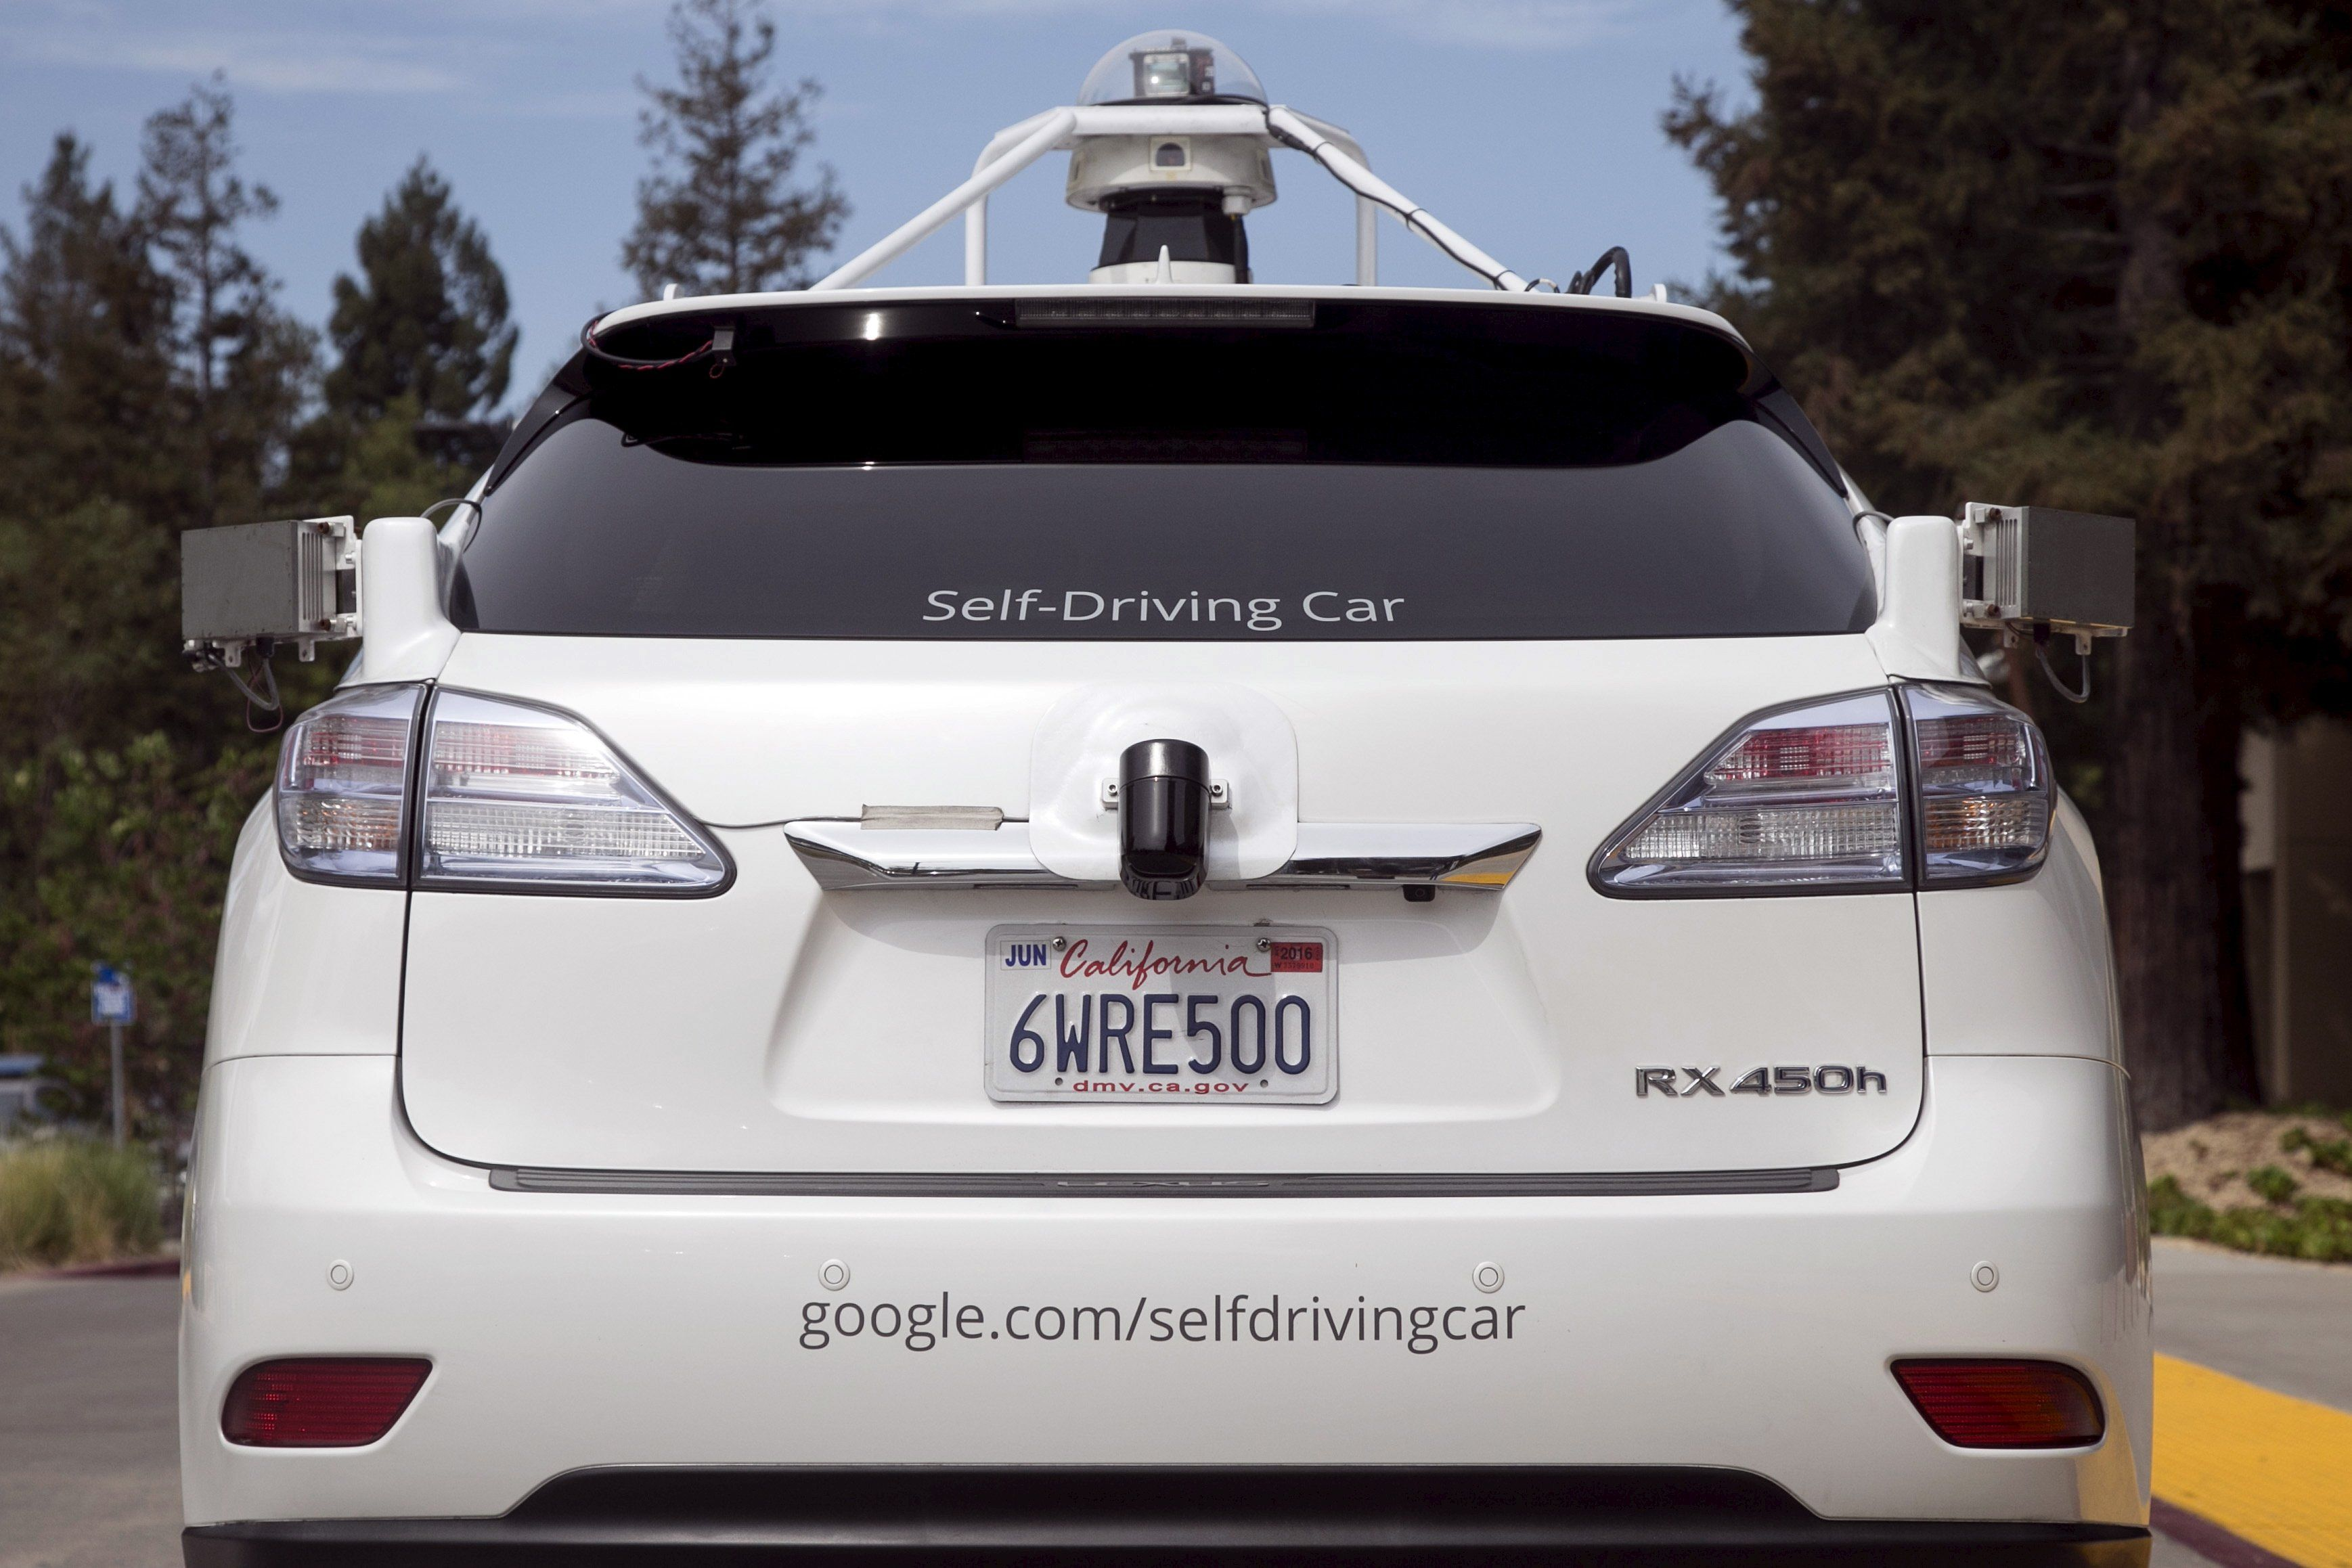 File photograph shows the rear of a Lexus SUV equipped with Google self-driving sensors during a media preview of Google's prototype autonomous vehicles in Mountain View, California September 29, 2015. Britain said on March 12, 2016  it will begin trialling driverless cars on motorways for the first time in 2017, as it moves towards its goal of allowing autonomous cars to take to the streets by 2020. Finance minister George Osborne will announce plans on Wednesday to test vehicles on motorways and say the government will bring forward proposals to remove regulatory barriers to the technology, the Treasury said. Alphabet Inc GOOGL.O unit Google wants to eventually be able to deploy fully autonomous vehicles without human controls, and major automakers are racing to develop vehicles that can drive themselves at least part of the time.  REUTERS/Elijah Nouvelage/Files